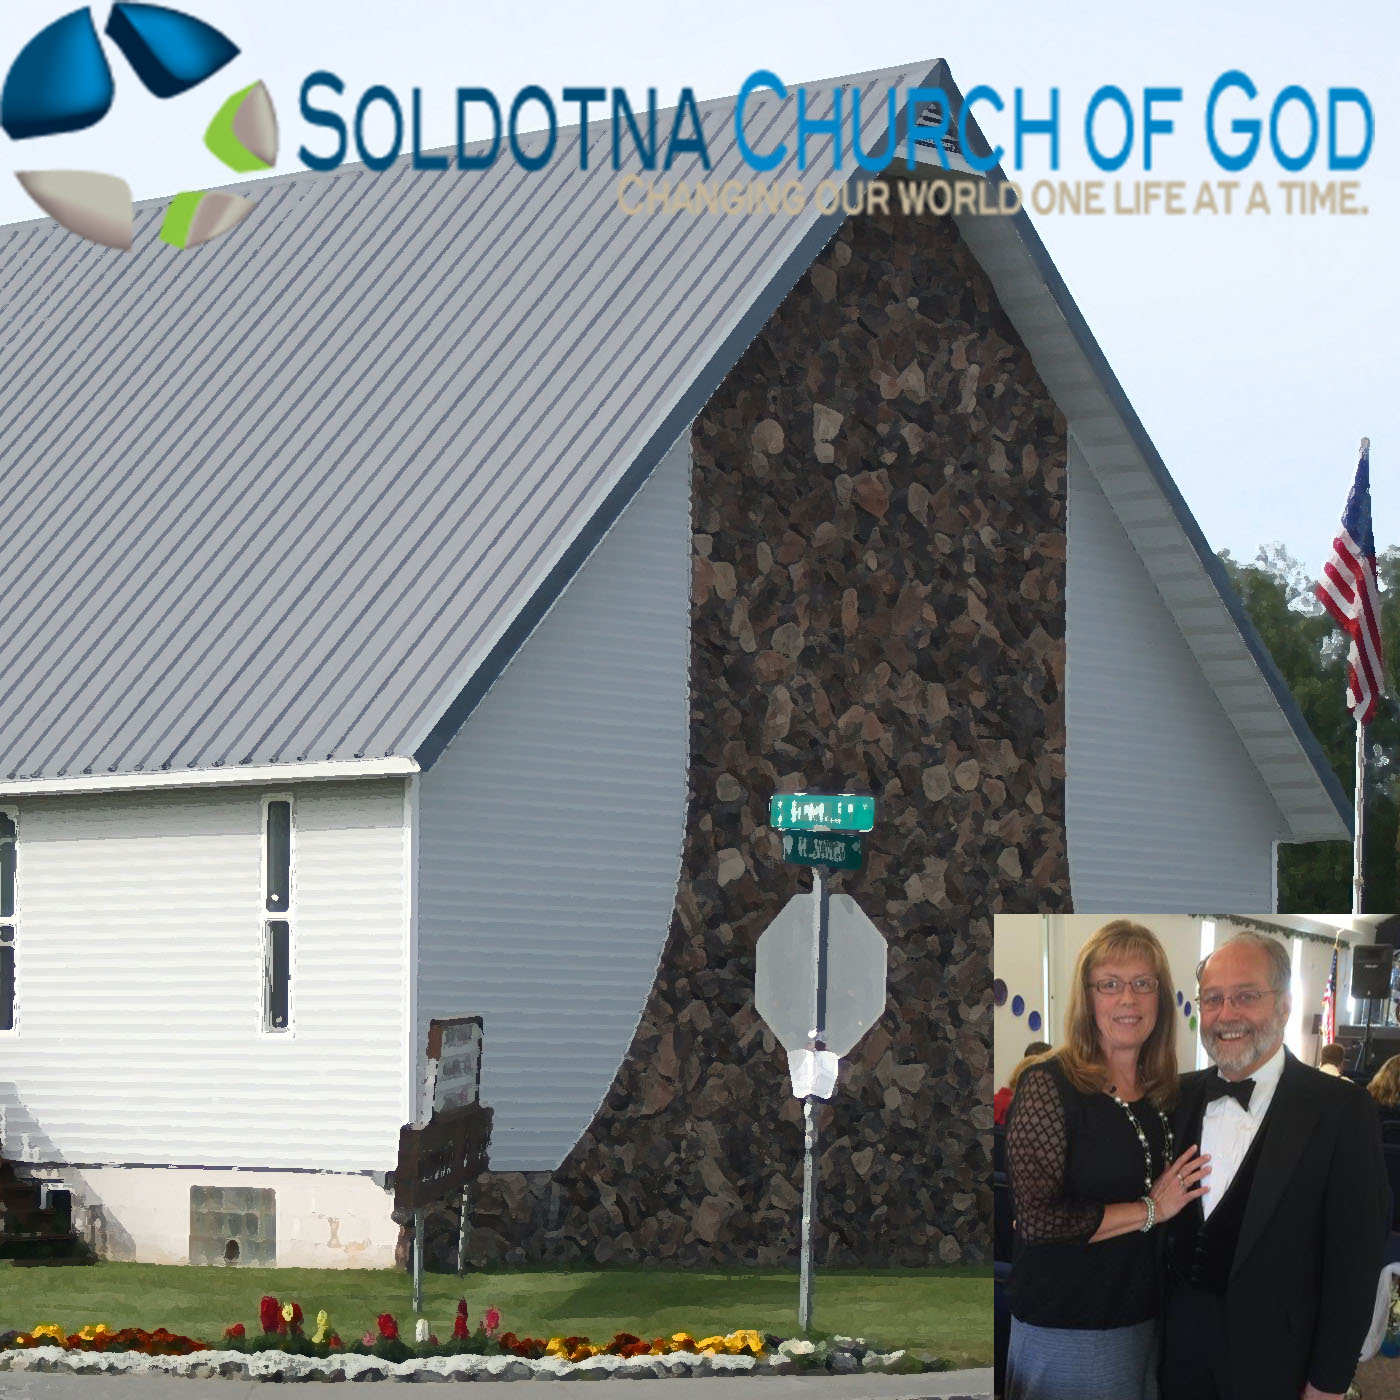 Soldotna Church of God Podcast Site